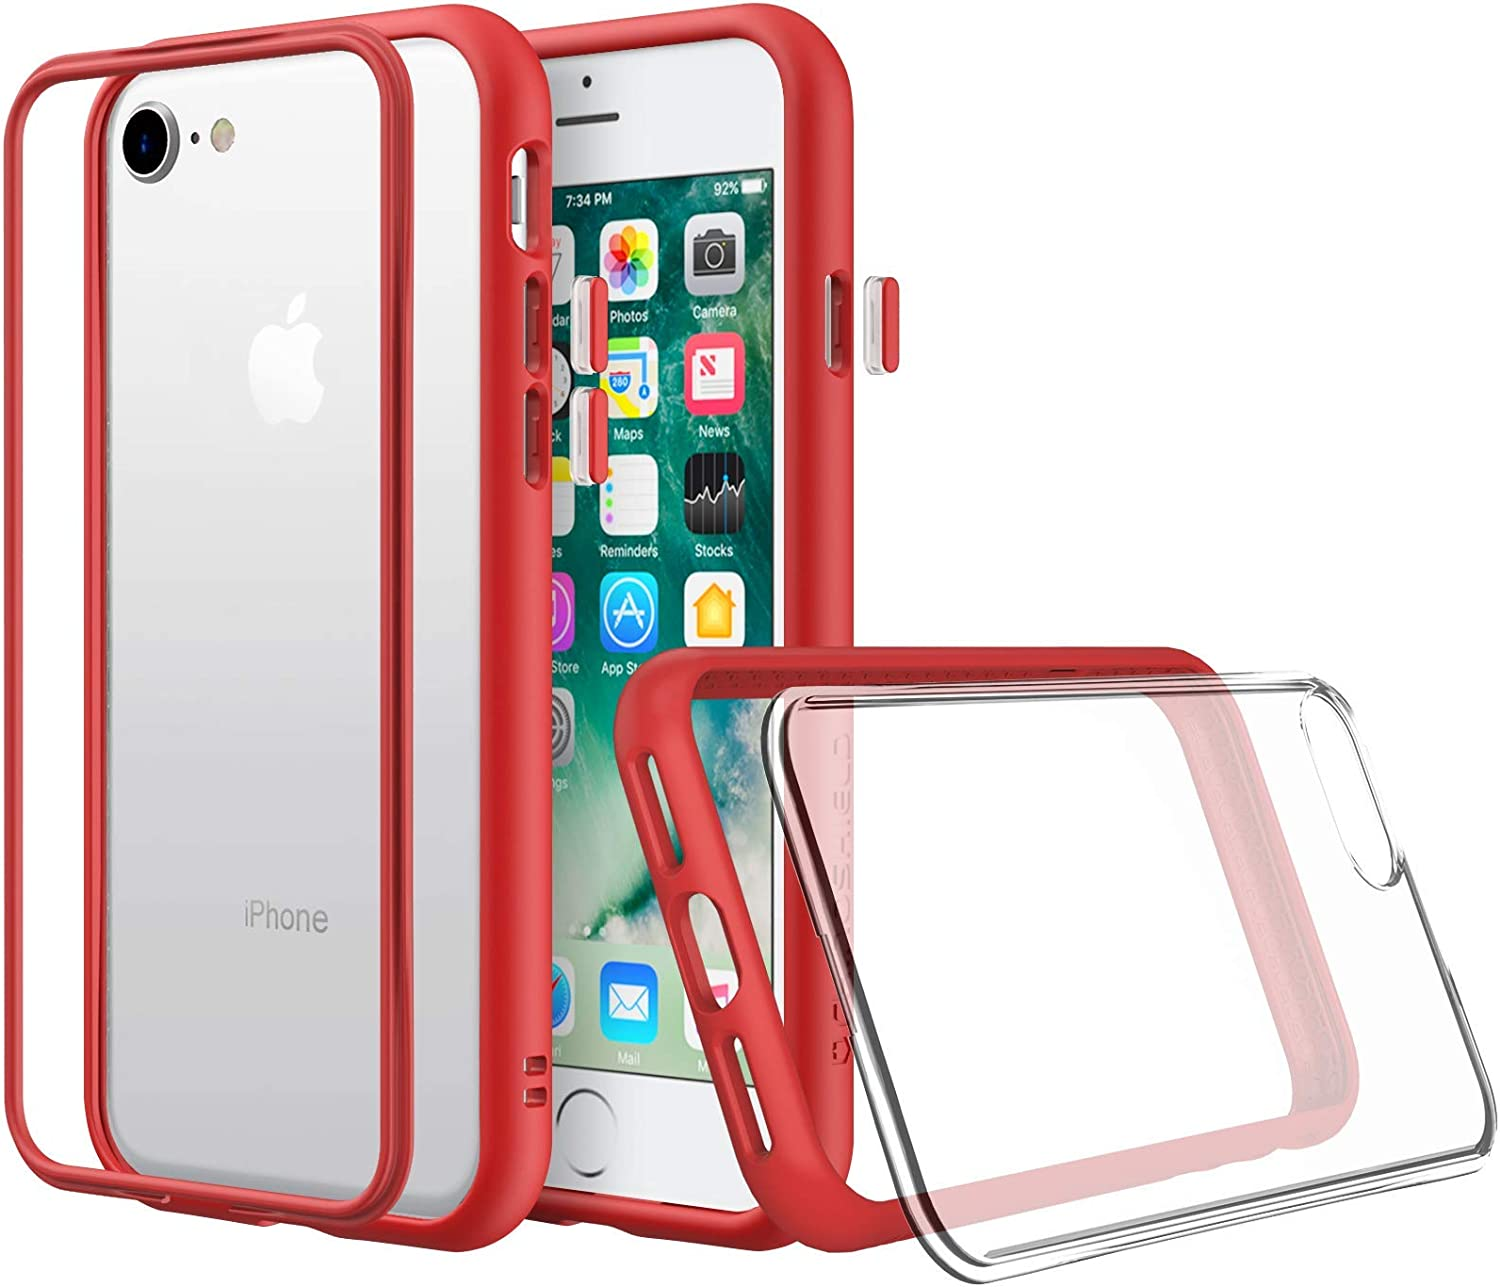 RhinoShield Modular Case Compatible with [iPhone SE2 / SE (2020) / 8/7] | Mod NX - Customizable Shock Absorbent Heavy Duty Protective Cover - Shockproof Red Bumper with Clear Back